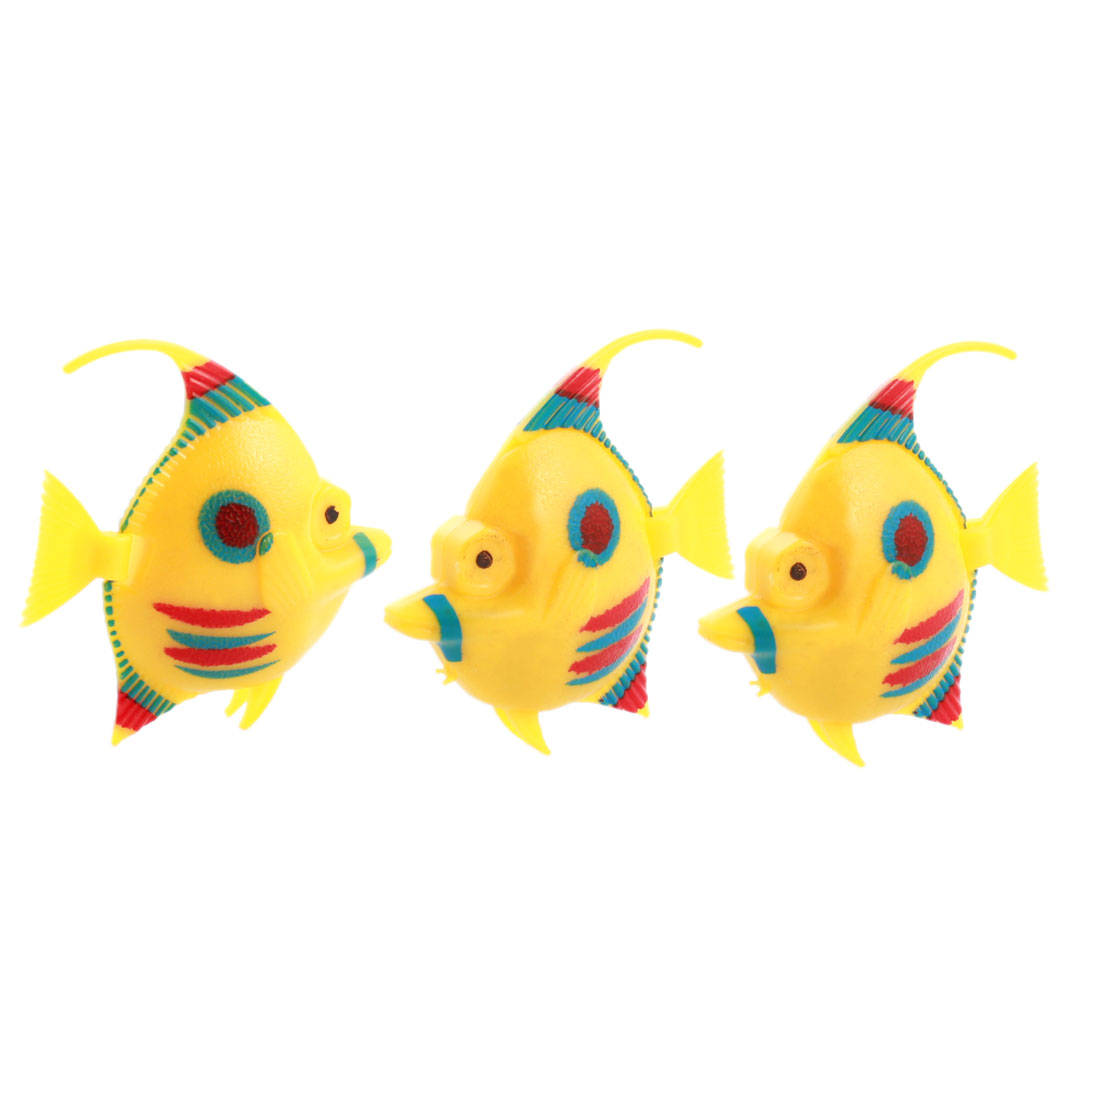 3 Pcs Aquarium Manmade Wiggly Tail Swimming Fishes Decor Yellow